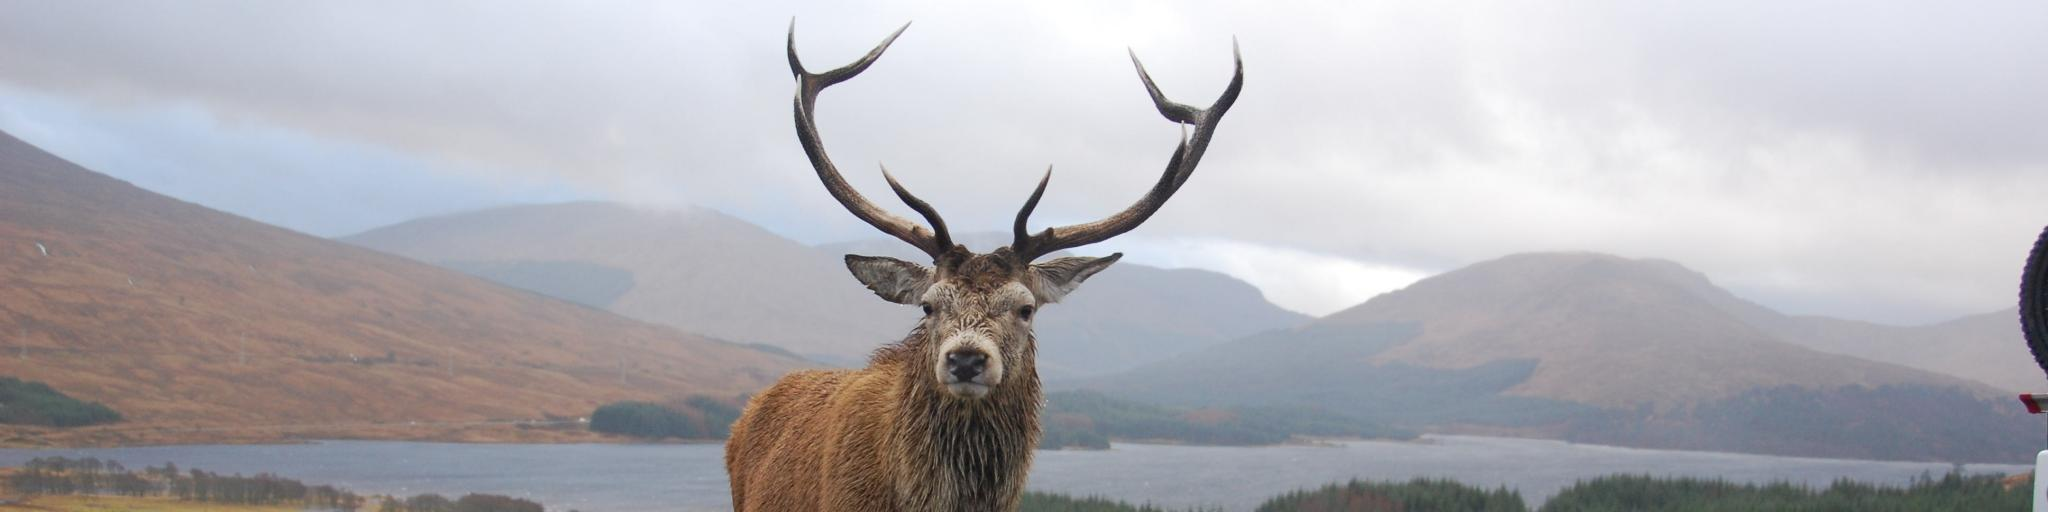 A stag stood in the middle of the road in Scotland, on a drizzly day